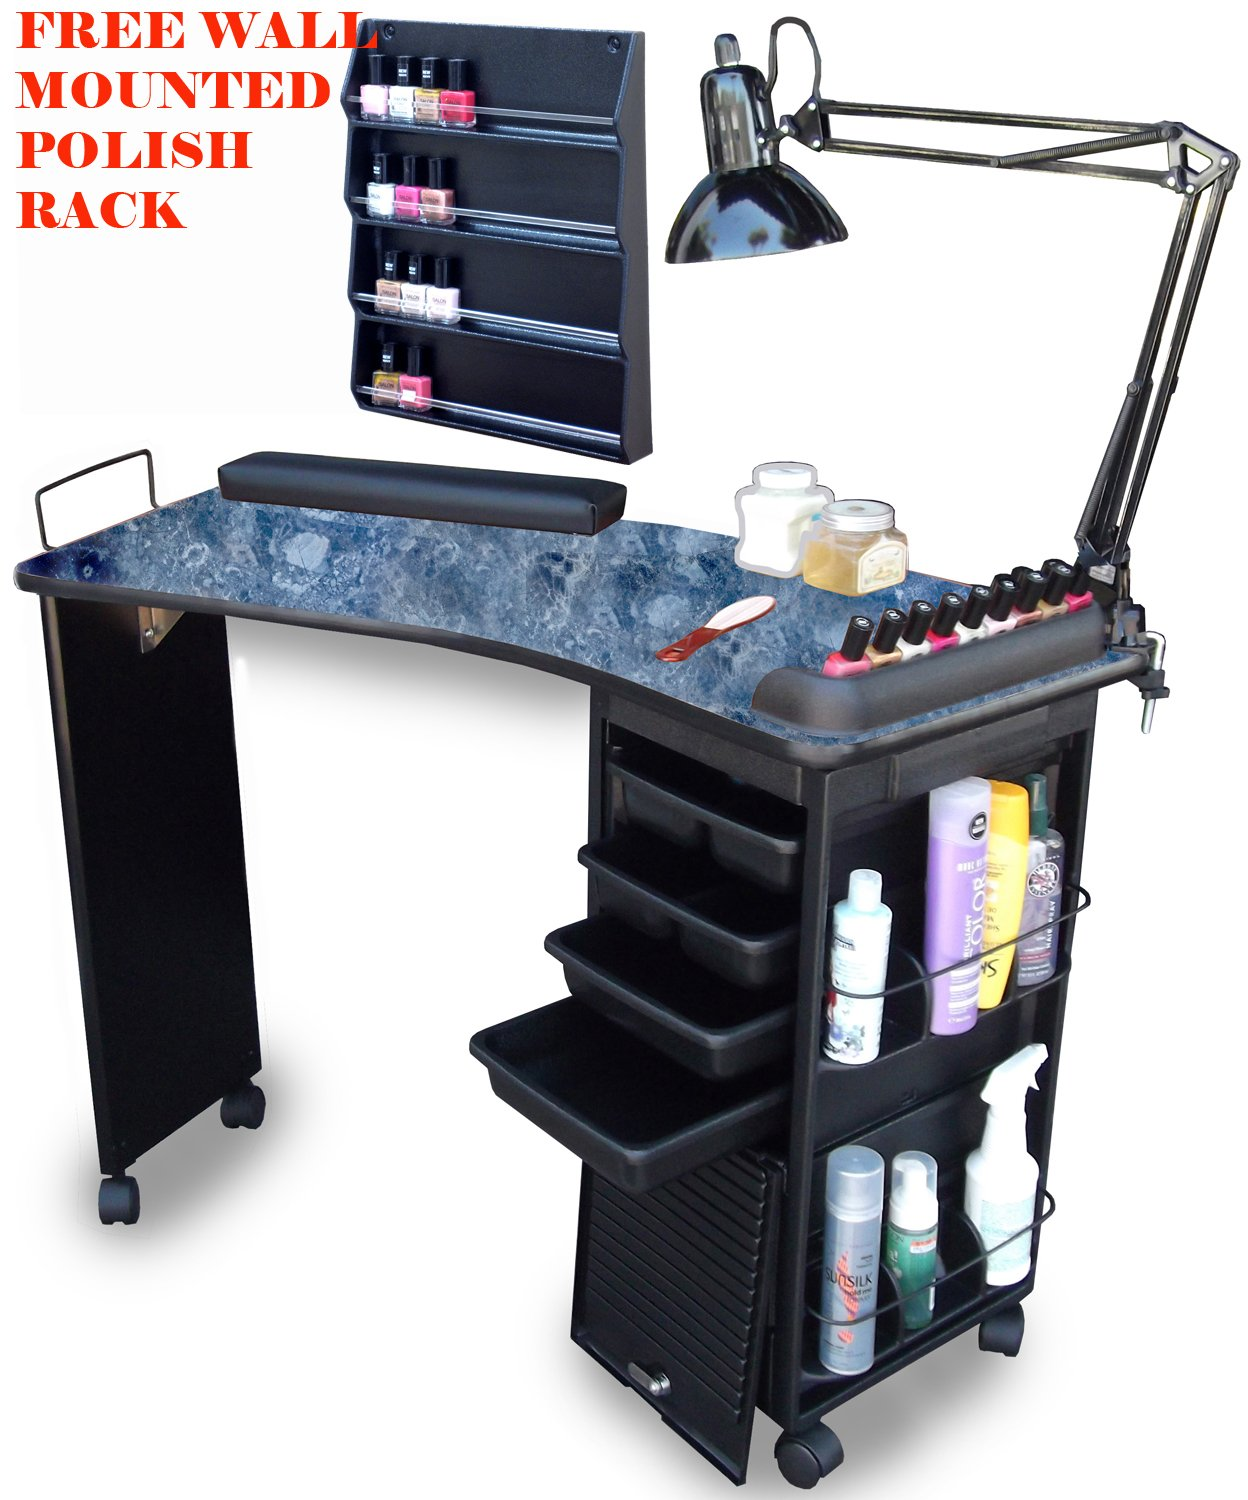 M600-FPR Manicure Nail Table Black Marble lam. Top W/FREE POLISH RACK